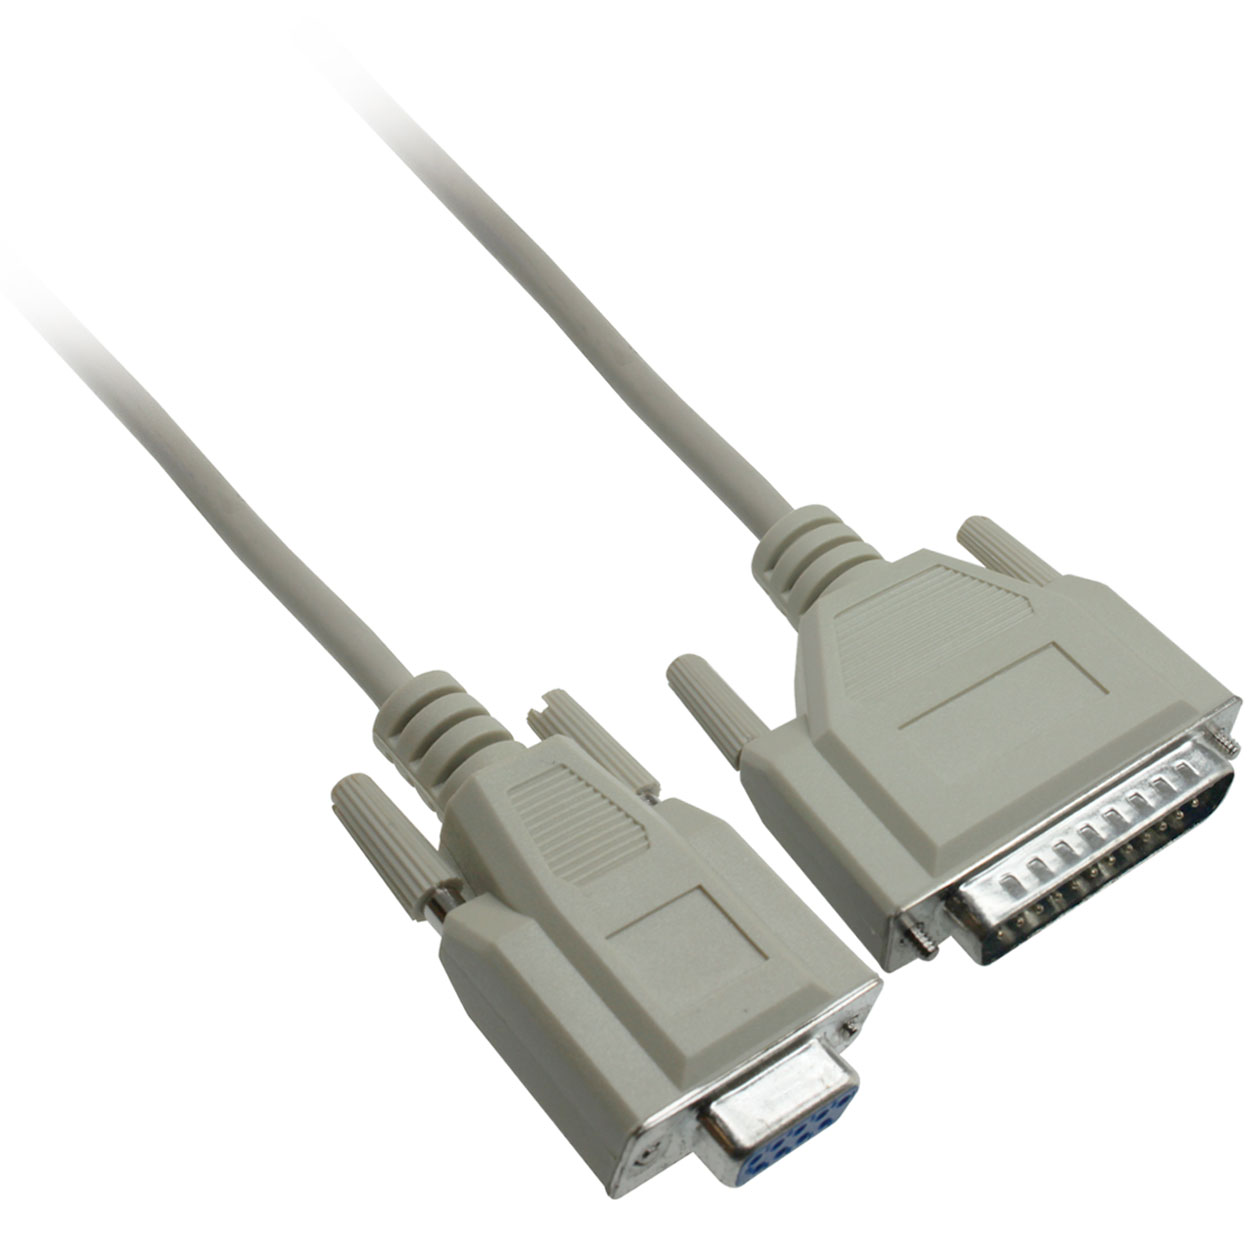 Serial Modem Cable DB9 Female to DB25 Male Cable, 6ft